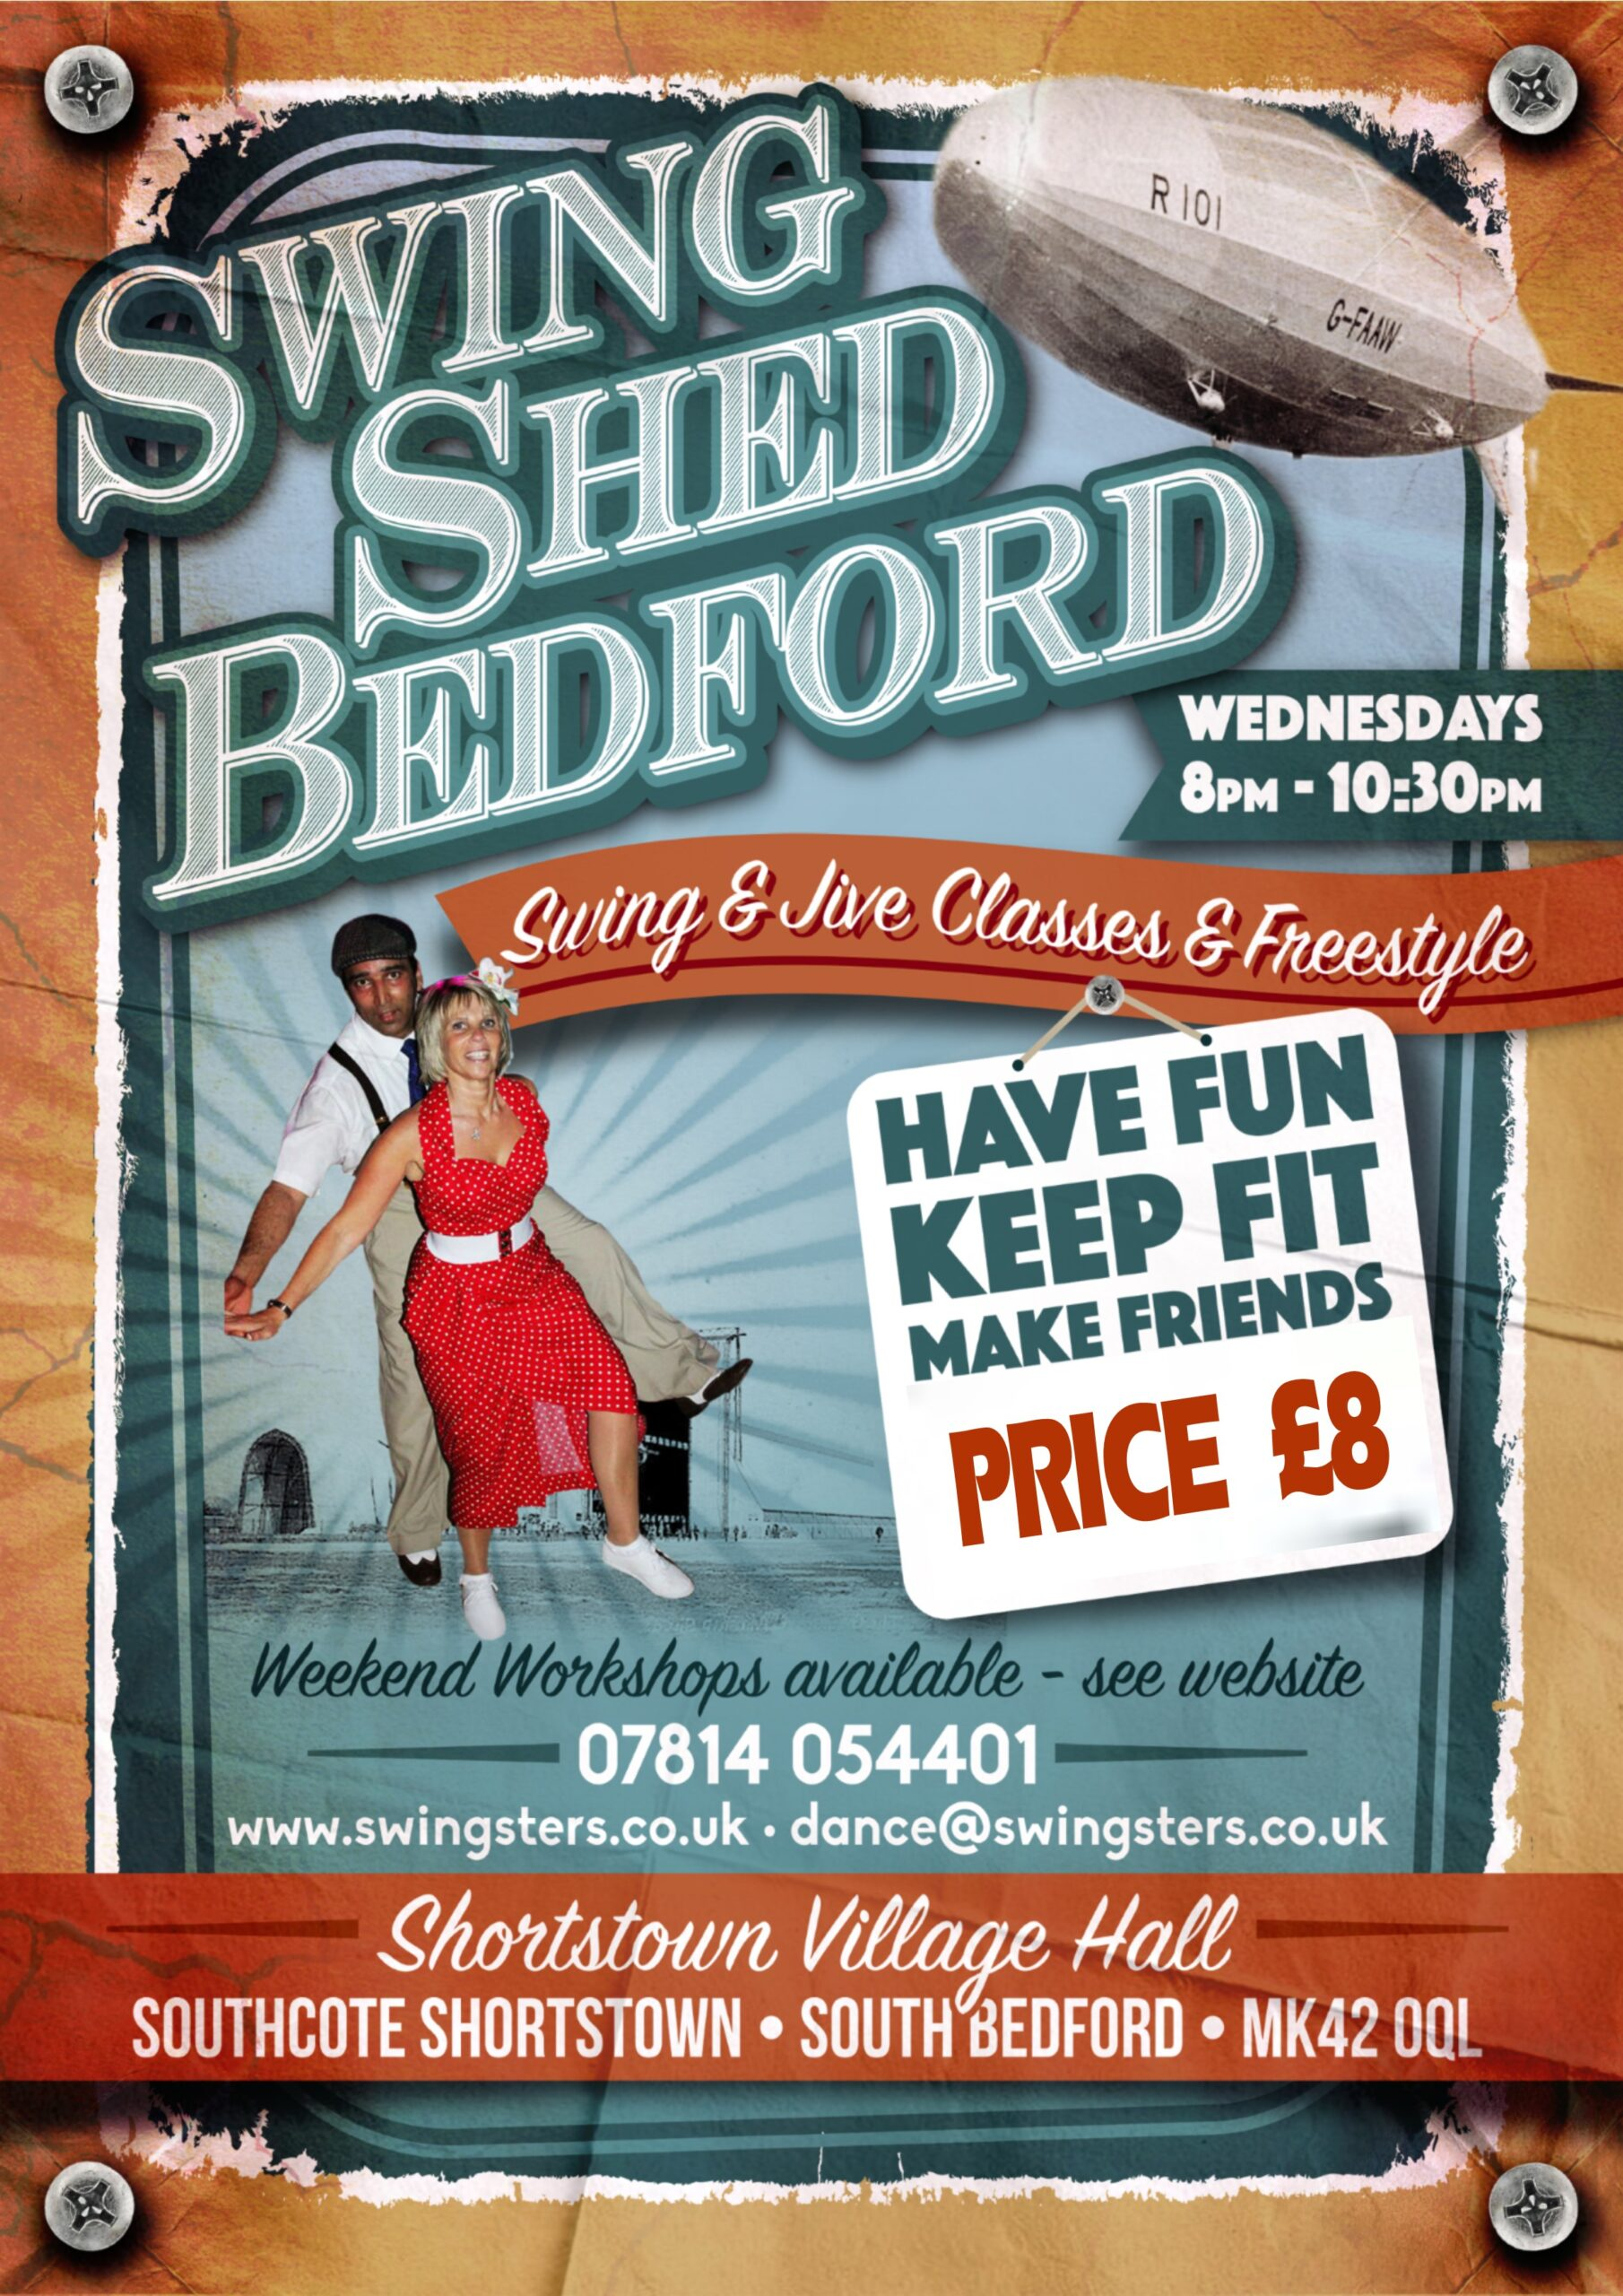 Swing Shed Bedford